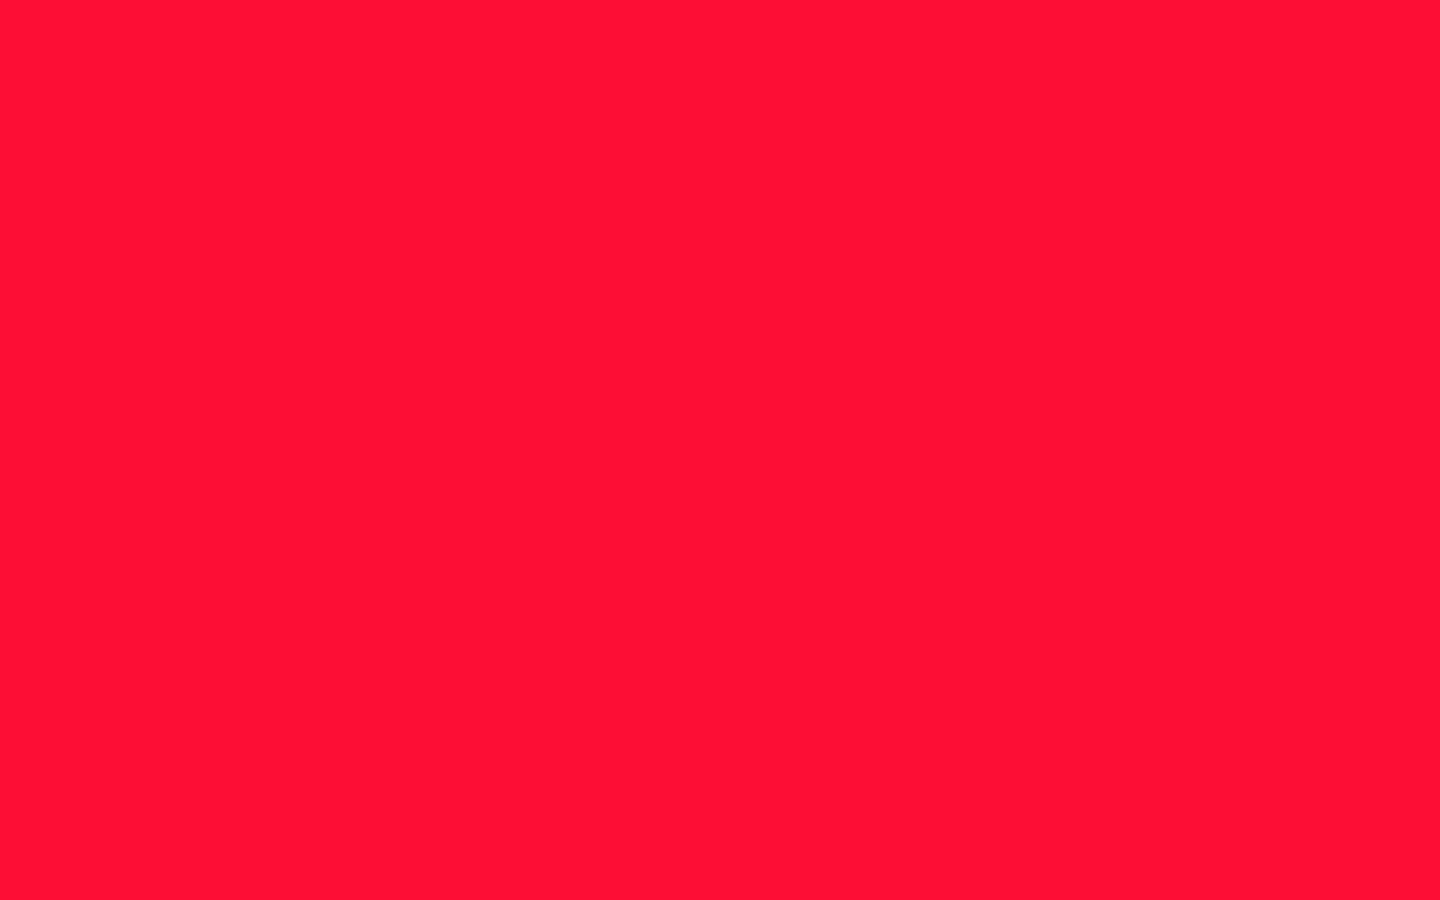 1440x900 Tractor Red Solid Color Background